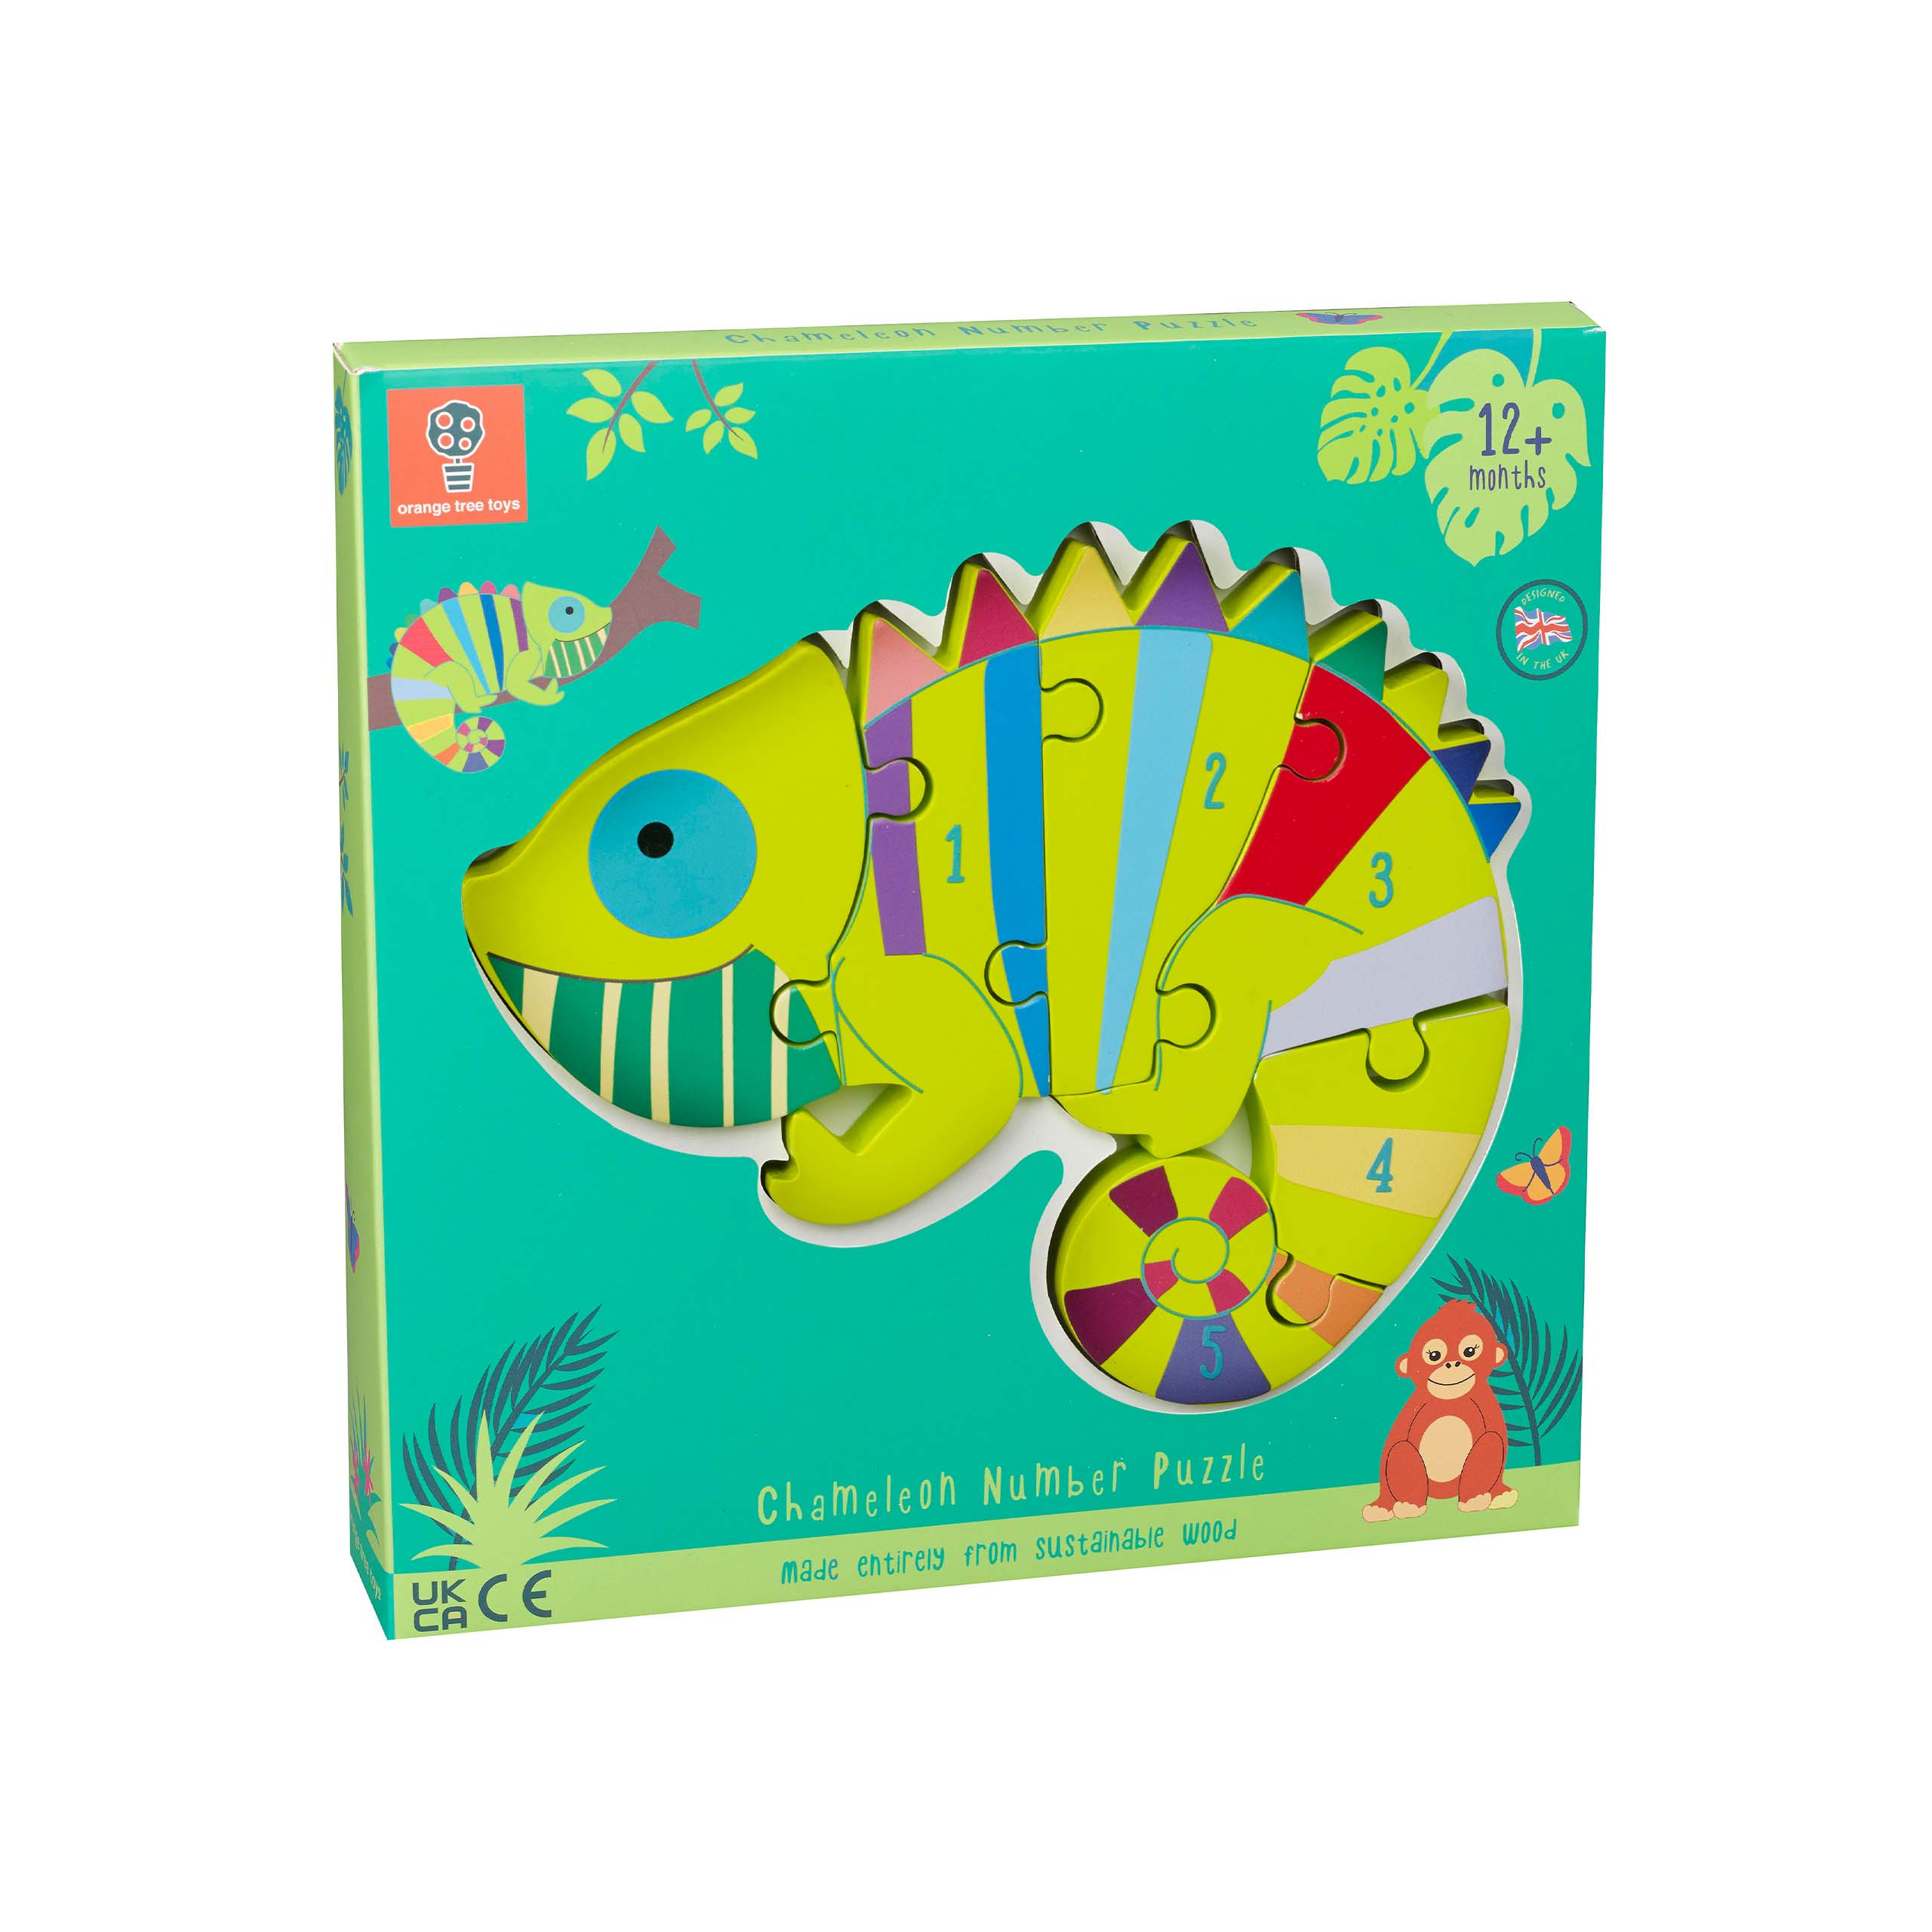 Chameleon Number Puzzle boxed